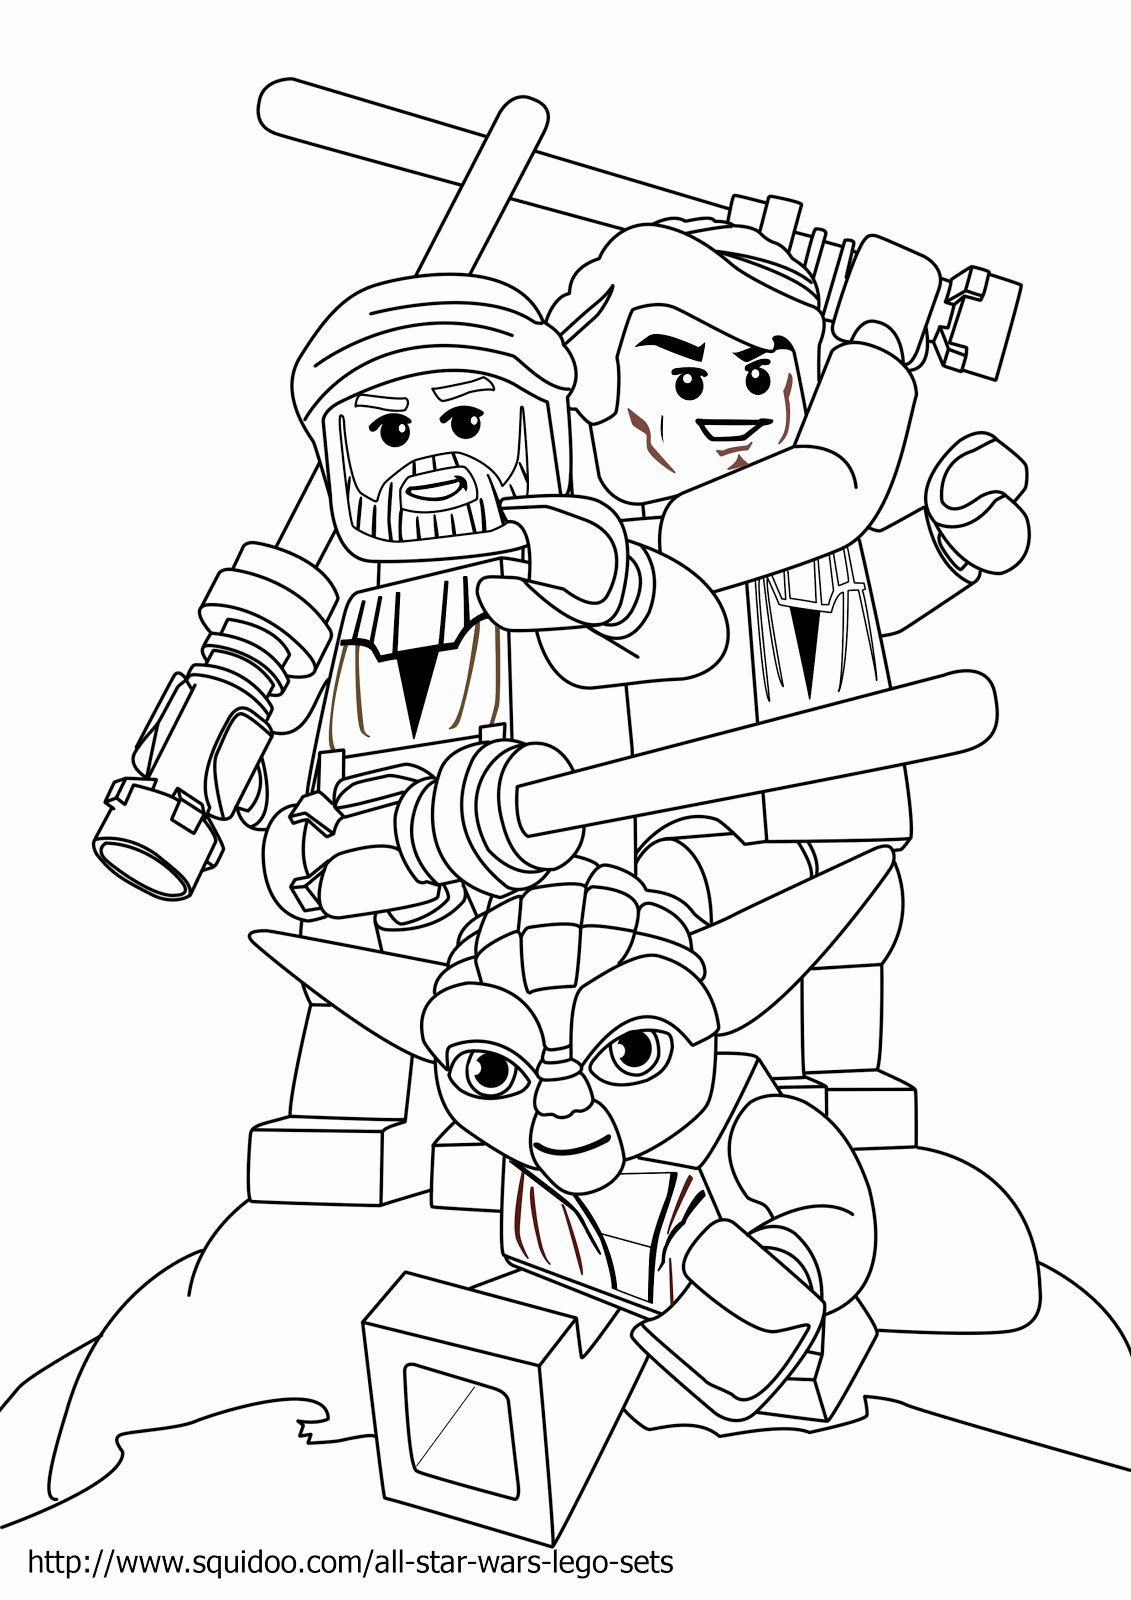 Coloring Page Star Wars Lovely Lego Star Wars Luke